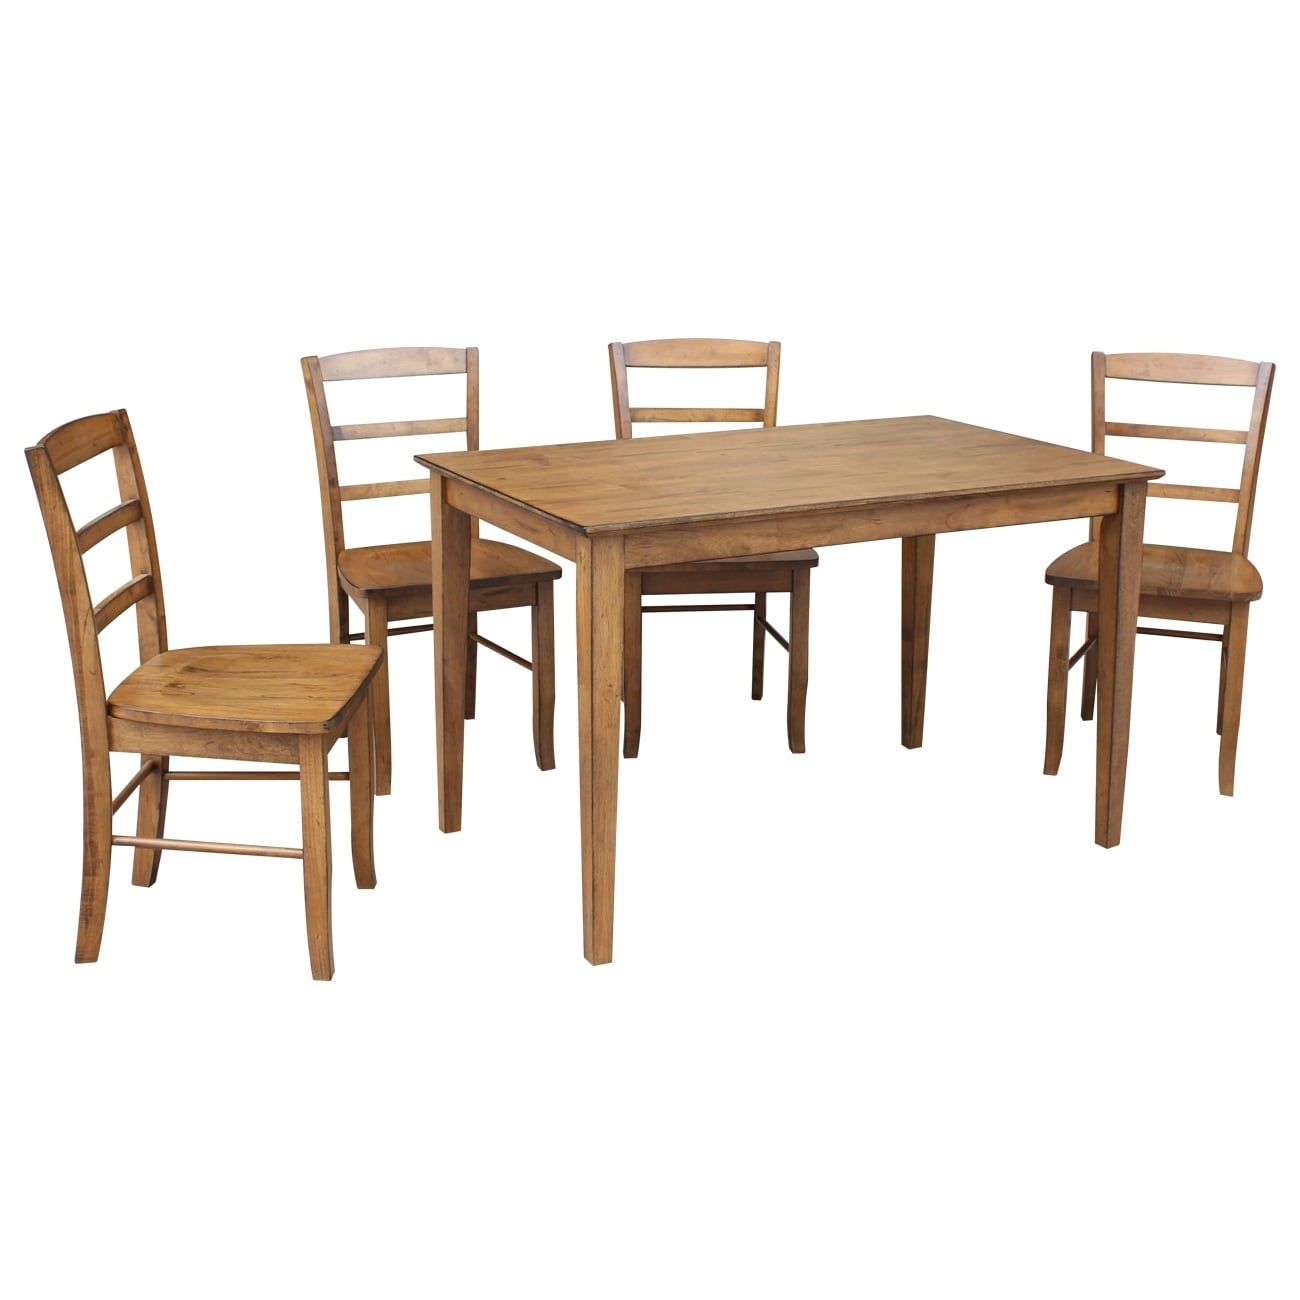 International Concepts 30 X 48 Dining Table With 4 Madrid Chairs Set Of 5 Overstock 18525001